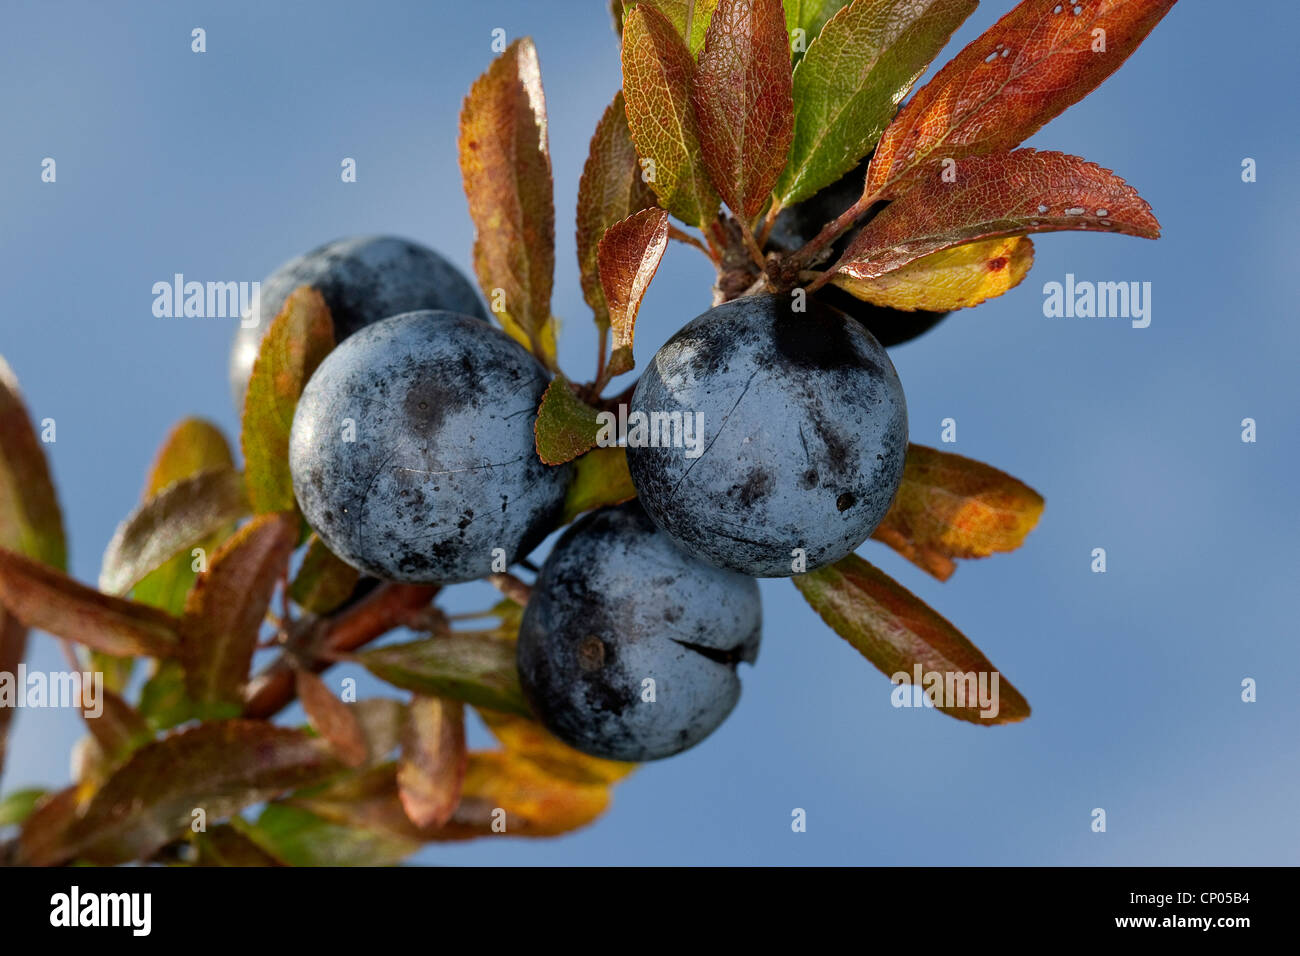 blackthorn, sloe (Prunus spinosa), blackthorn fruits on a branch, Germany - Stock Image